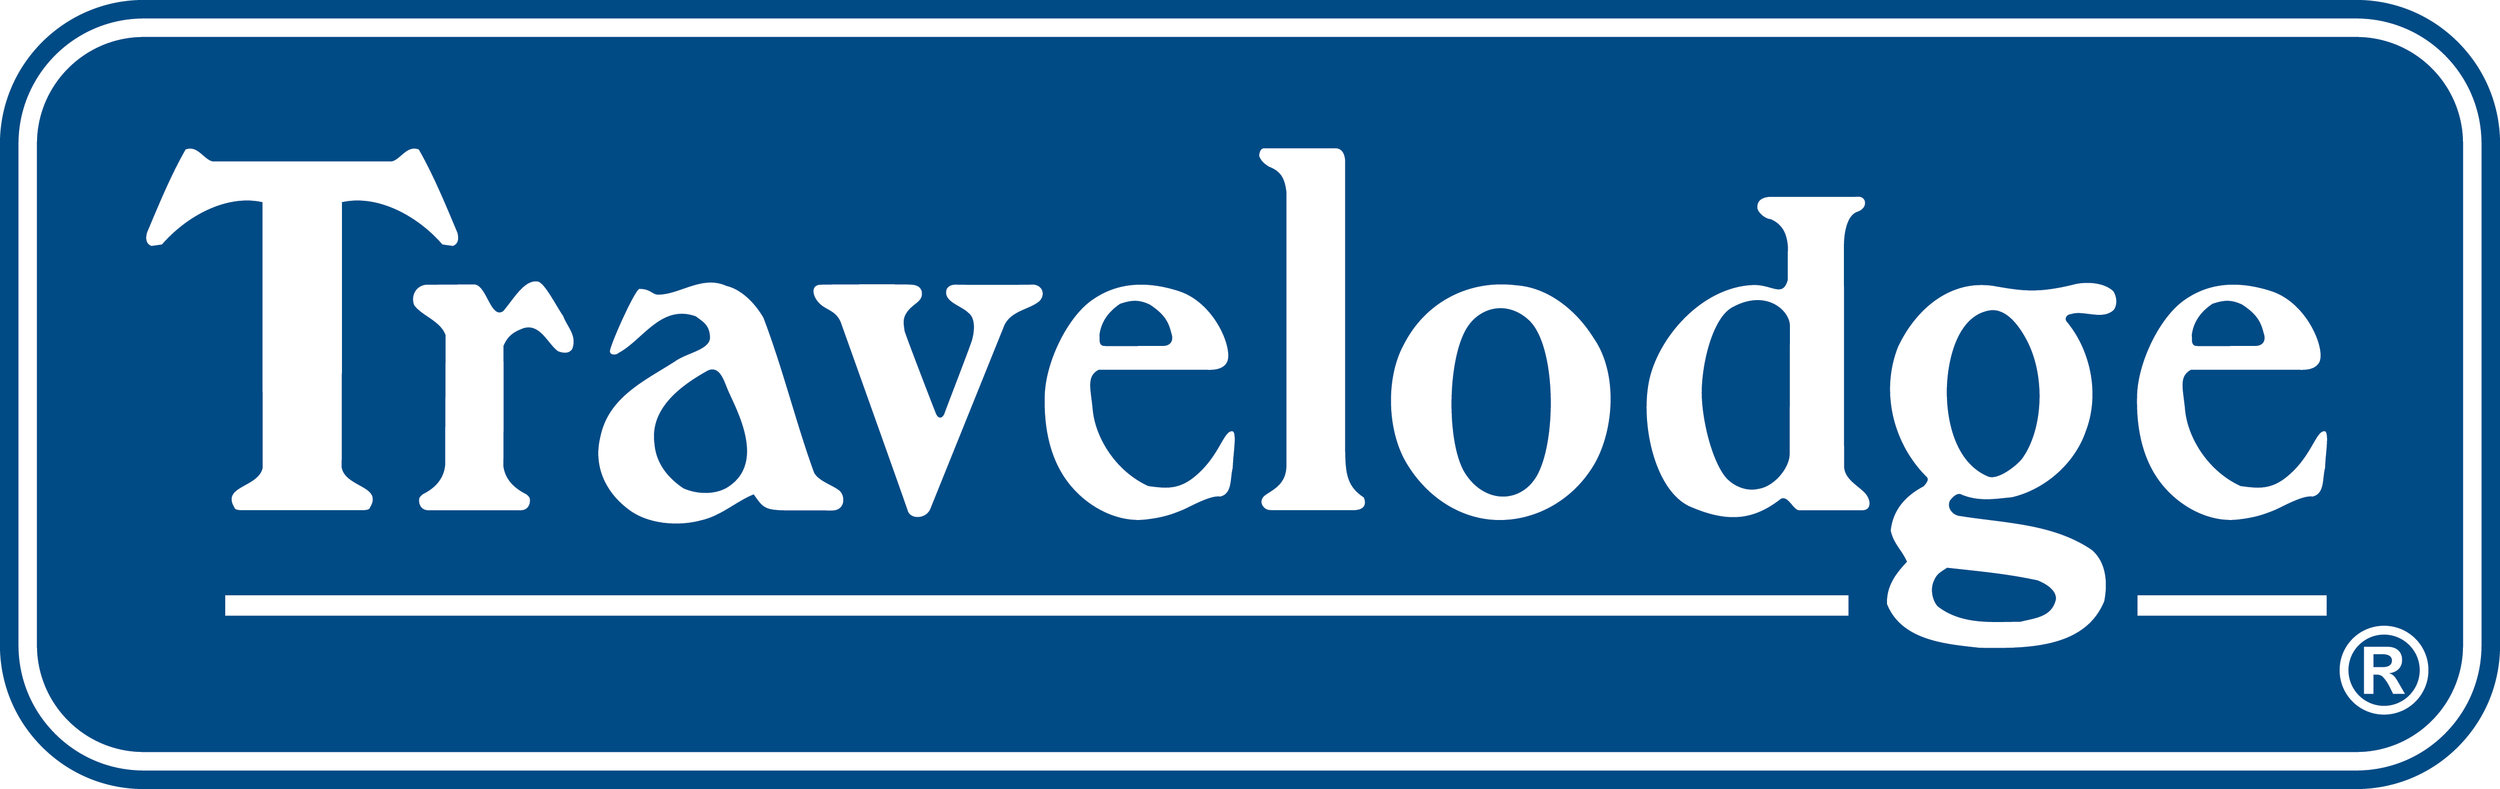 Travelodge_logo_.jpg